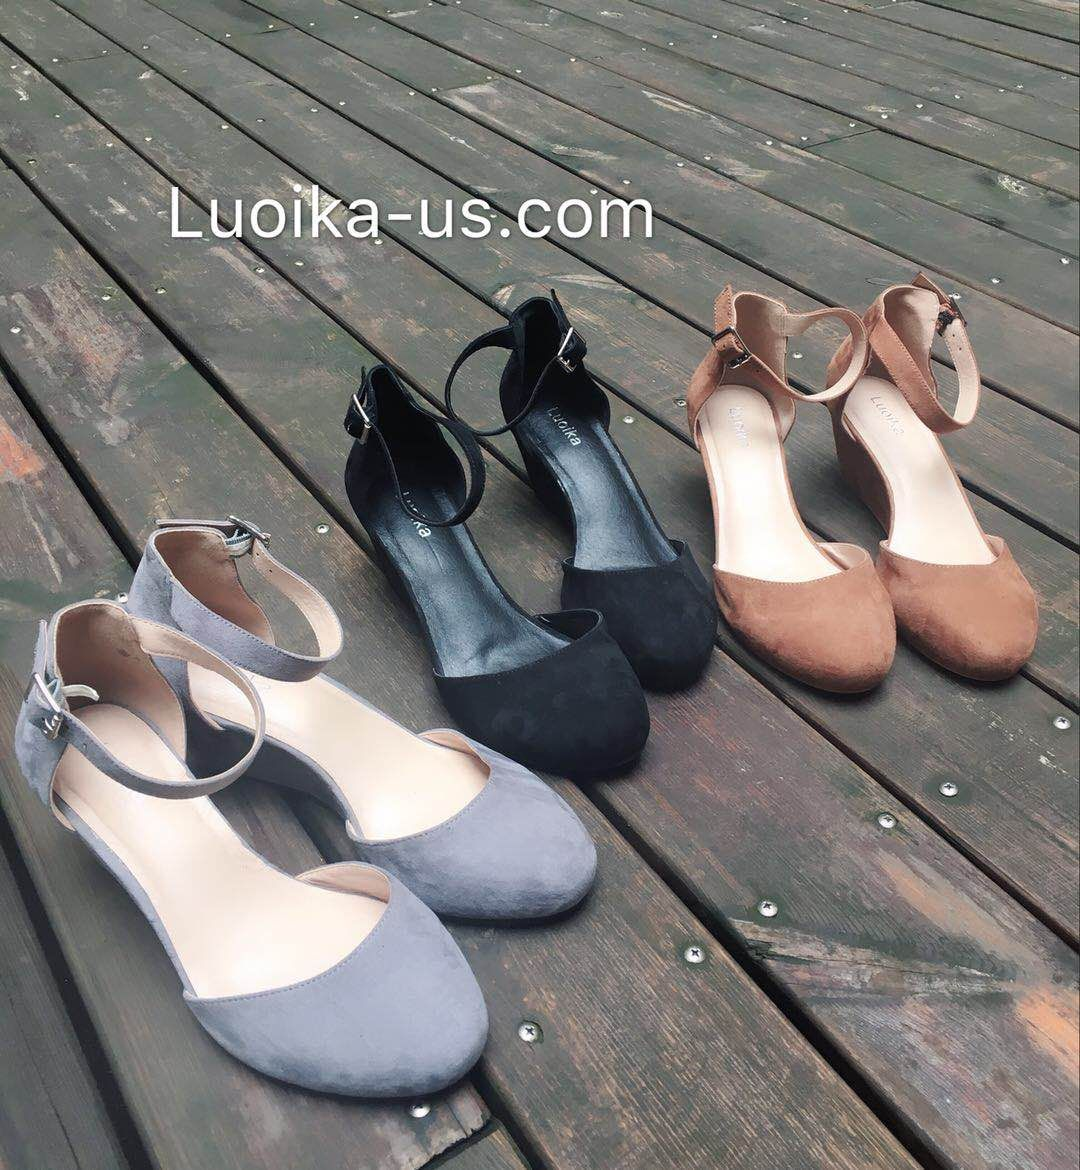 92285def8e20 Ankle Straps · Low Heels · Wedges · Wide Fit Shoes · http   amzn.to 2tXsaBt Luoika  Women s Wide Width Mini Wedges -